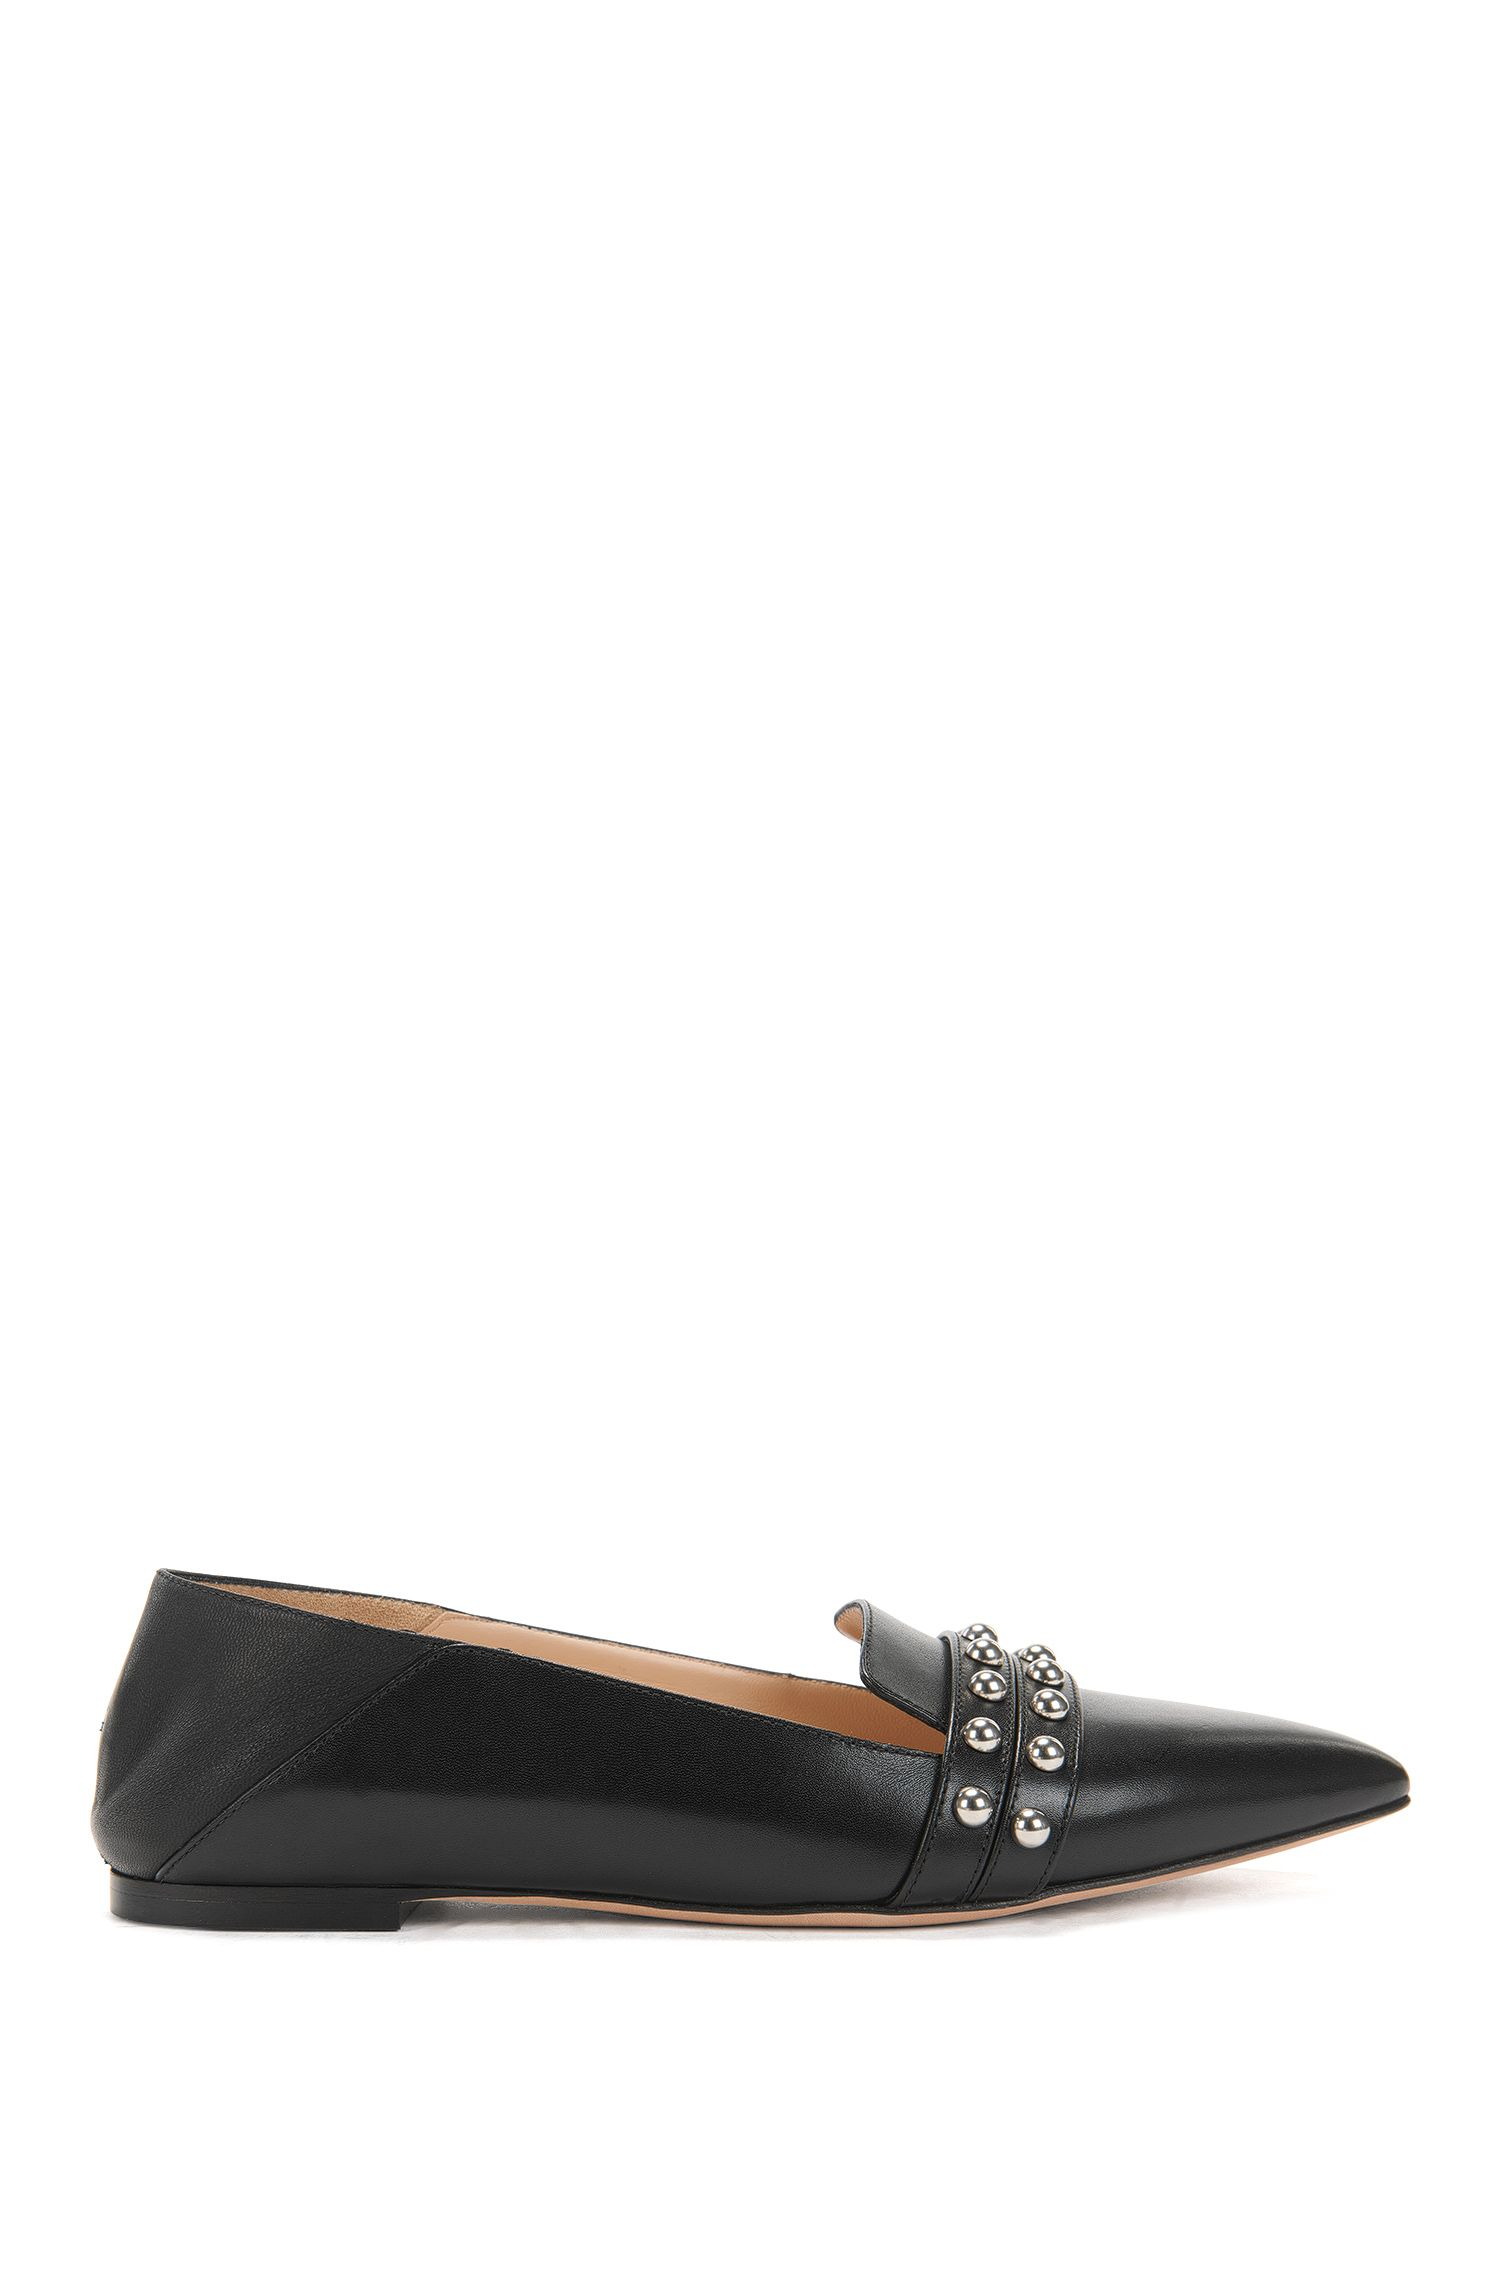 Leather ballerina pumps with stud embellishments